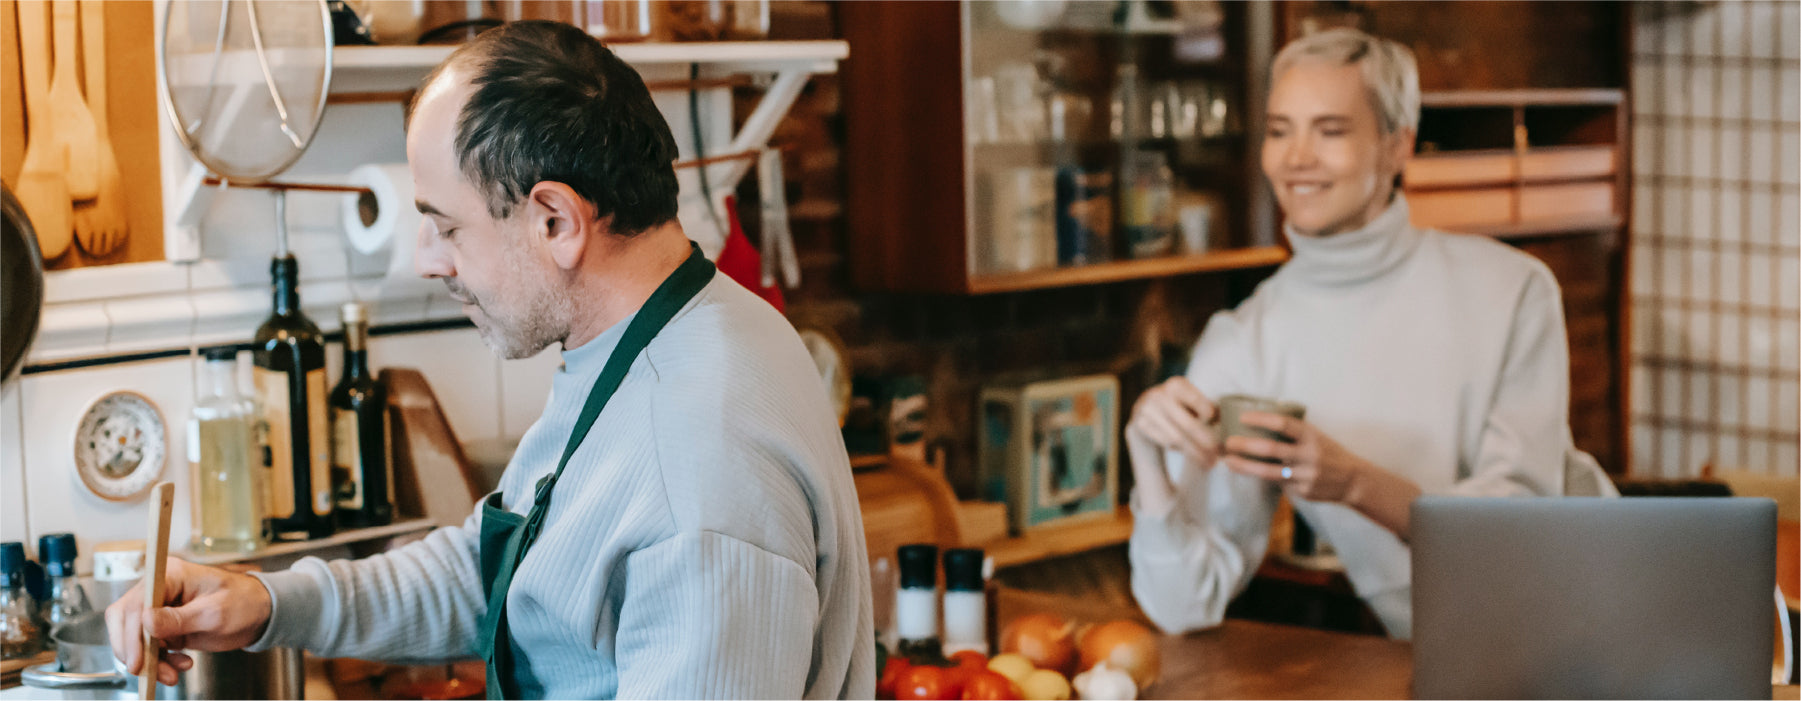 Helpful Tips for New Baristas and Home Baristas - by Coffee Life, a blog by EspressoWorks